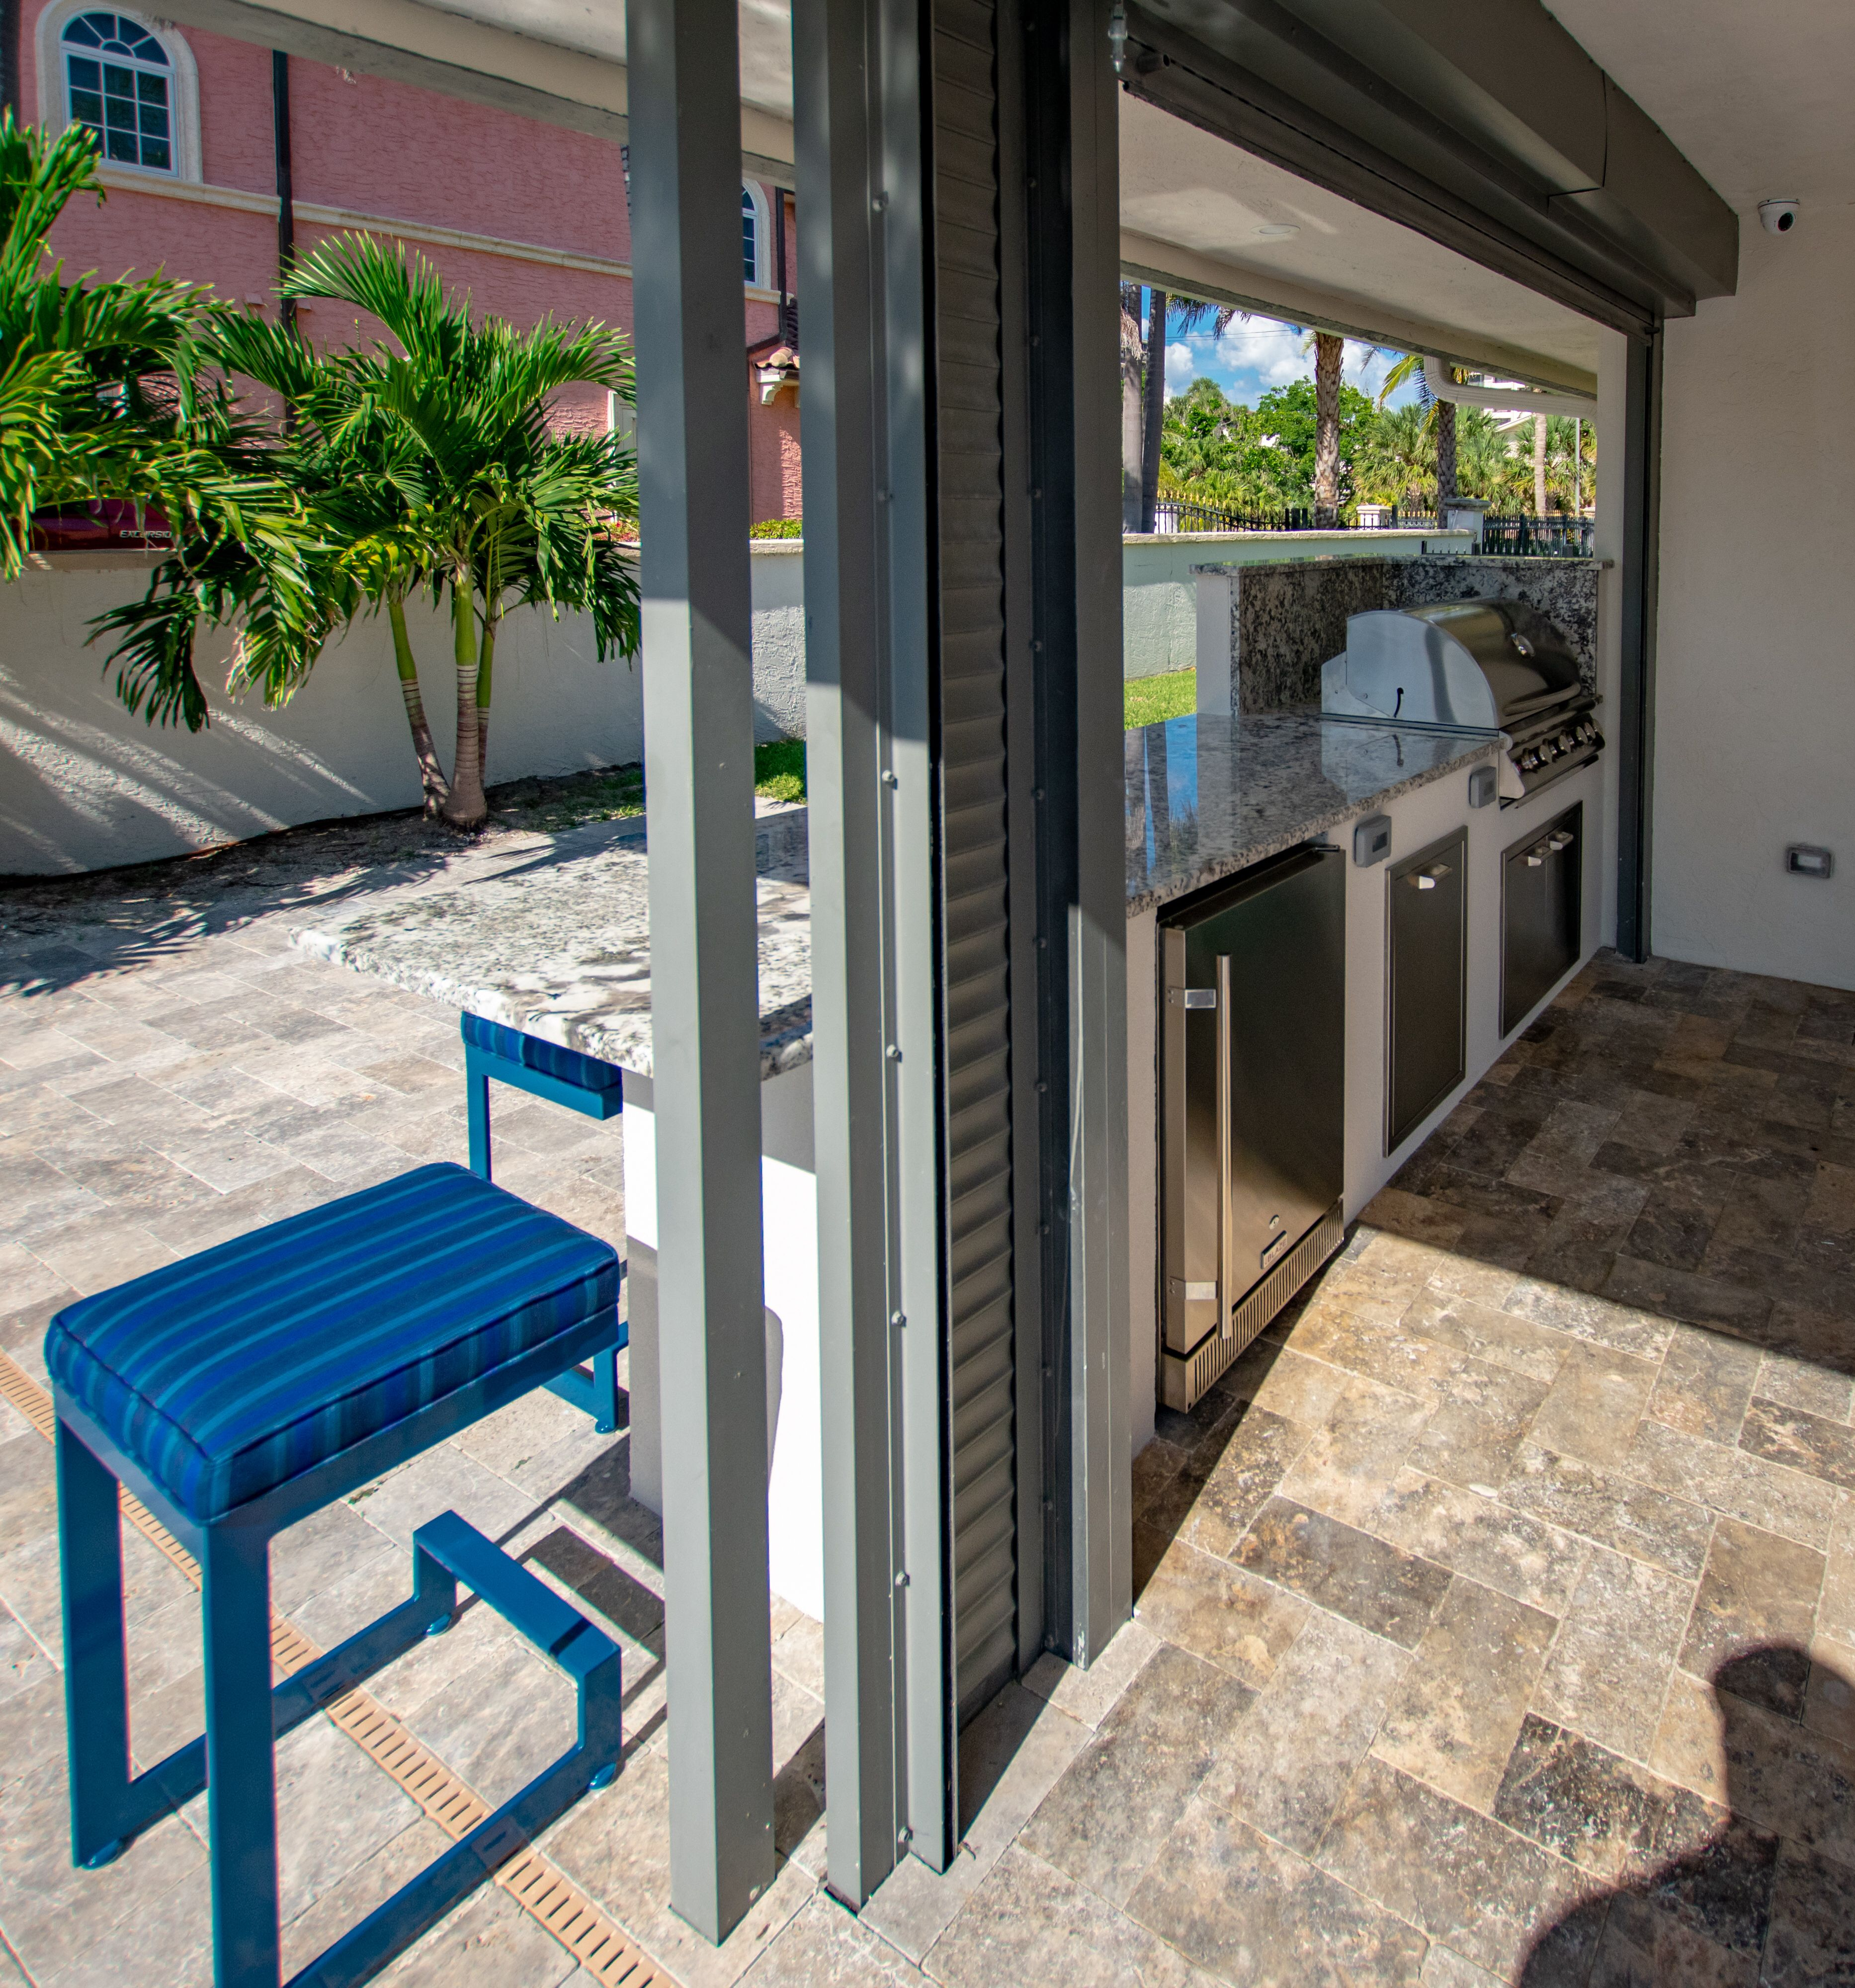 We Re Ready For The Weekend To Get Here Fischmanoutdoorkitchens Palmbeachgrillcleaner Outdoorentertainment Outd With Images Outdoor Kitchen Outdoor Appliances Outdoor